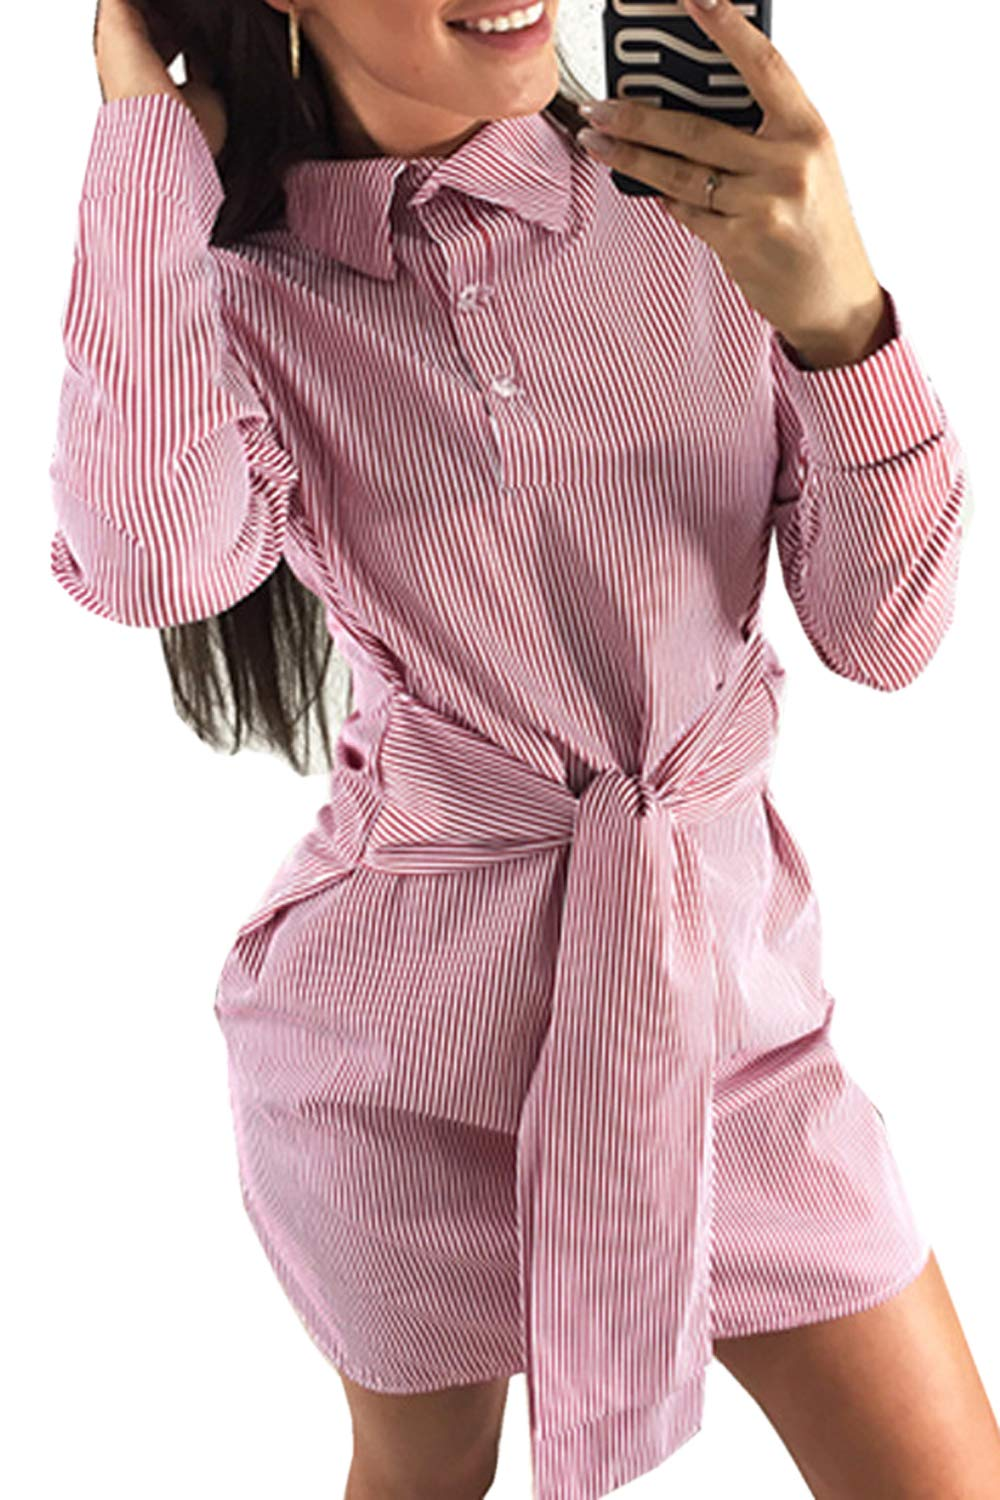 Bisting Womens Striped Collar Long Sleeve Tie Front Mini Dress Shirt Dresses Red S